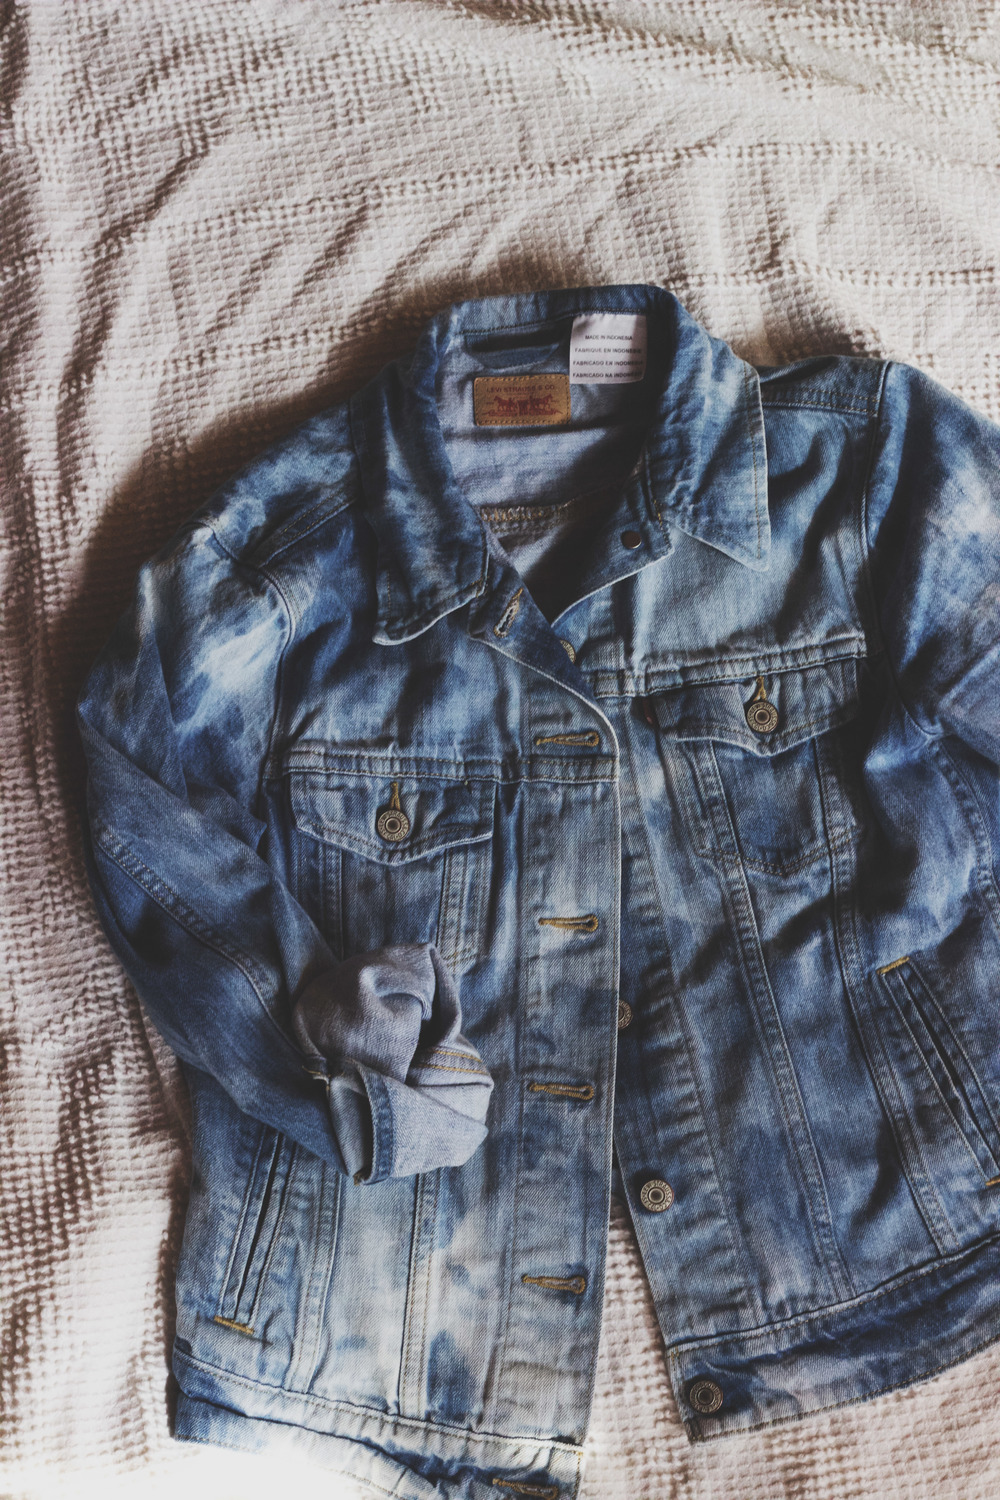 Stone Washing Denim How To Lighten Your Jean Jacket With Bleach